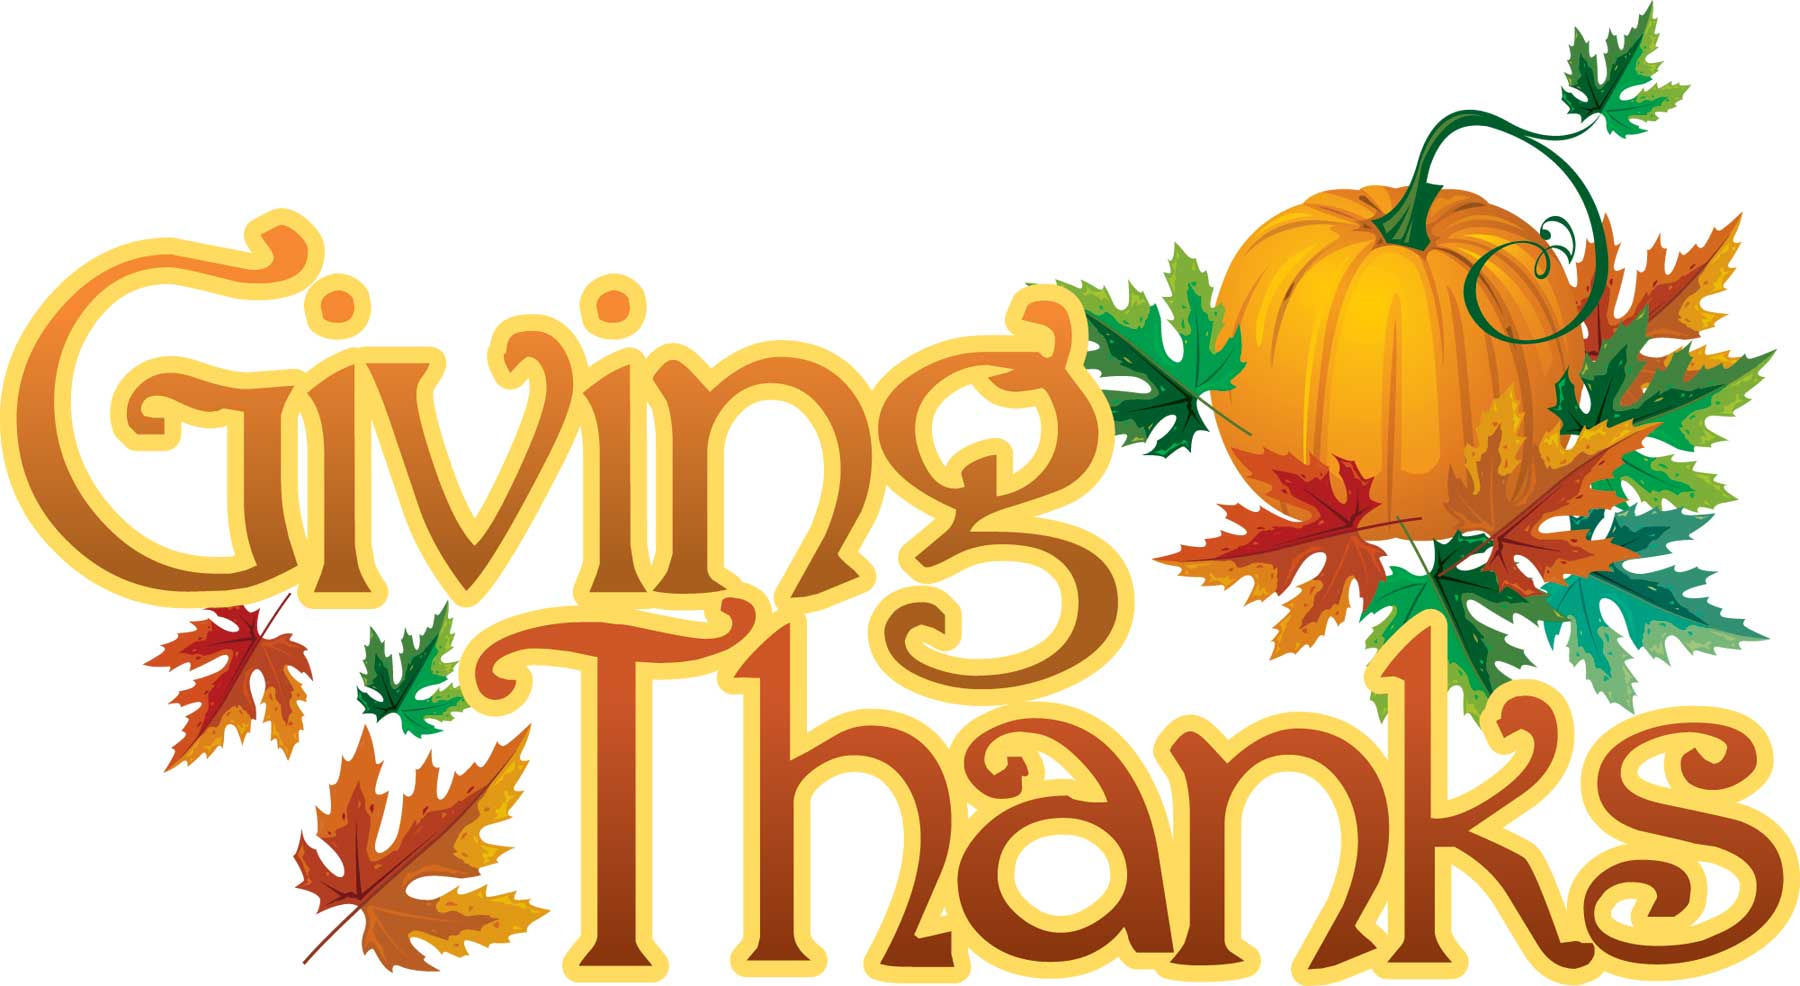 Giving Thanks For Opportunity Inspiring The Next Generation Of